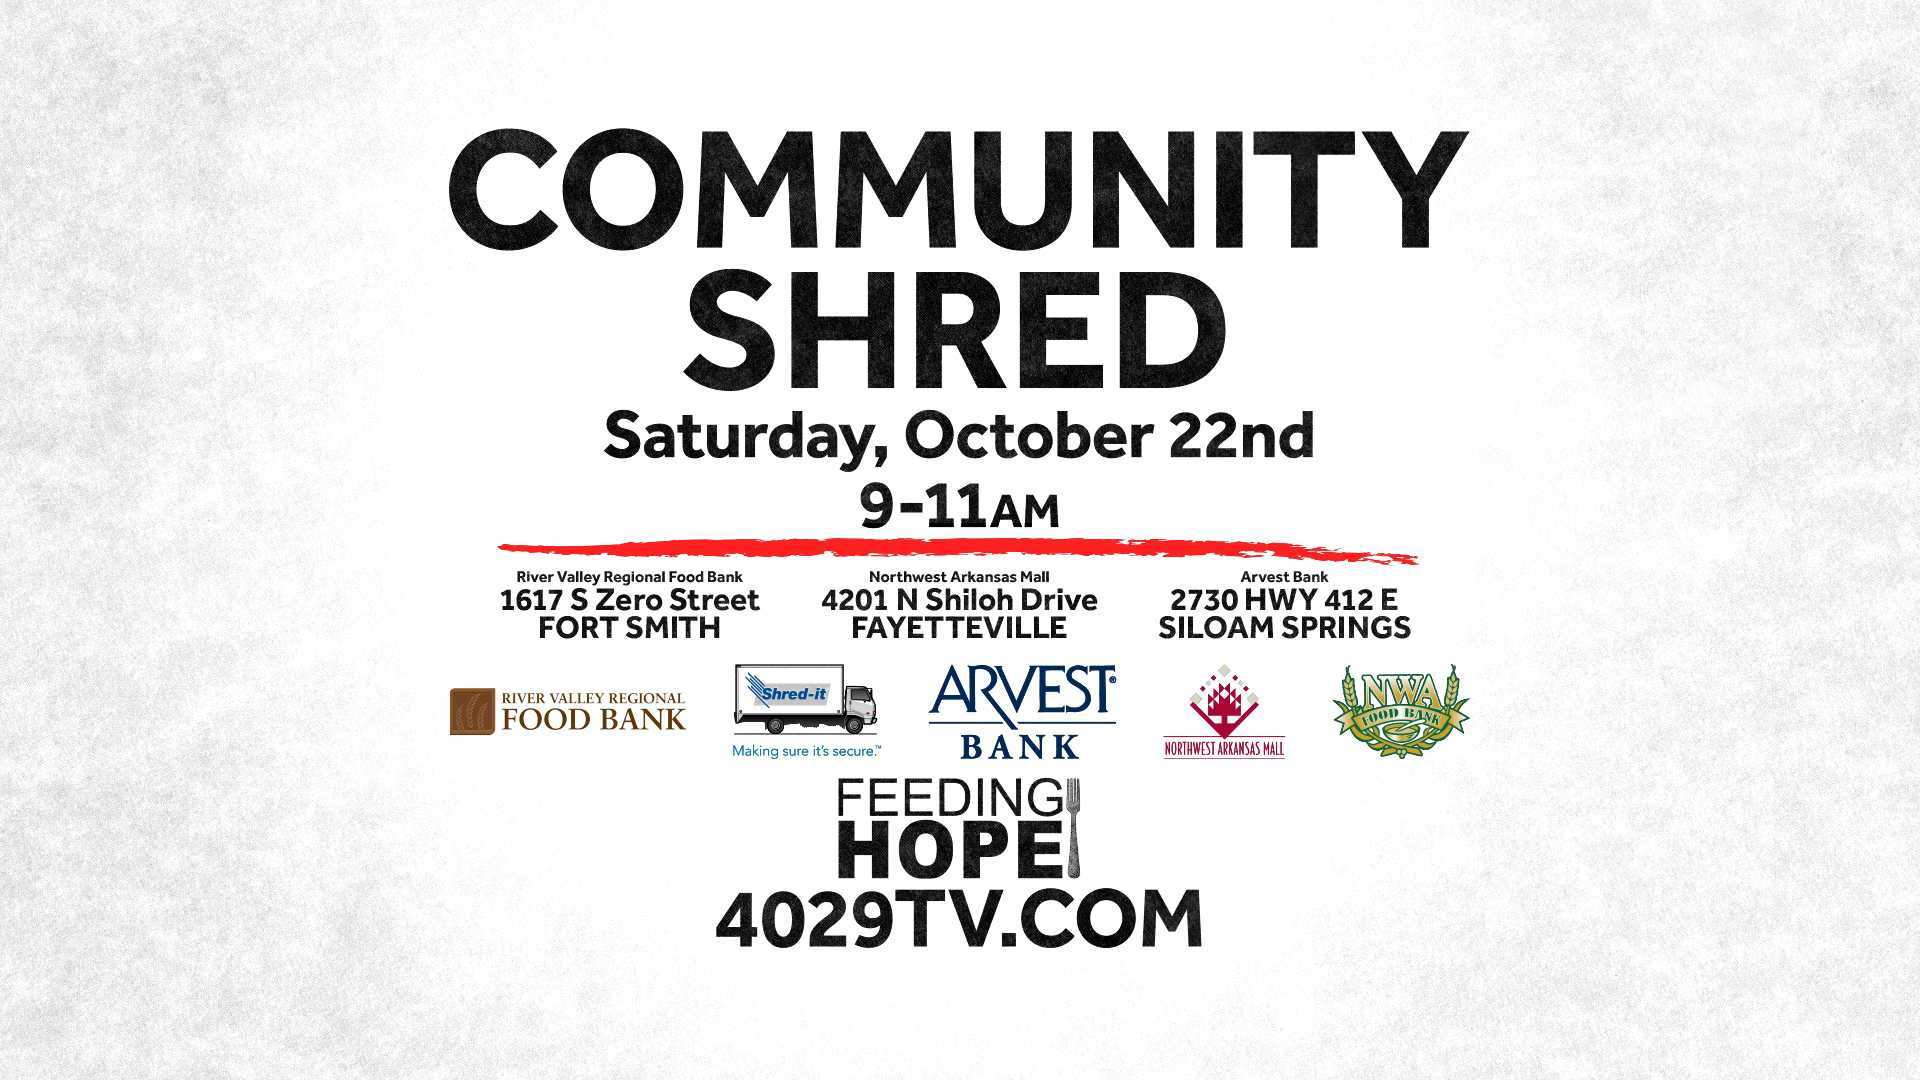 Community Shred Info